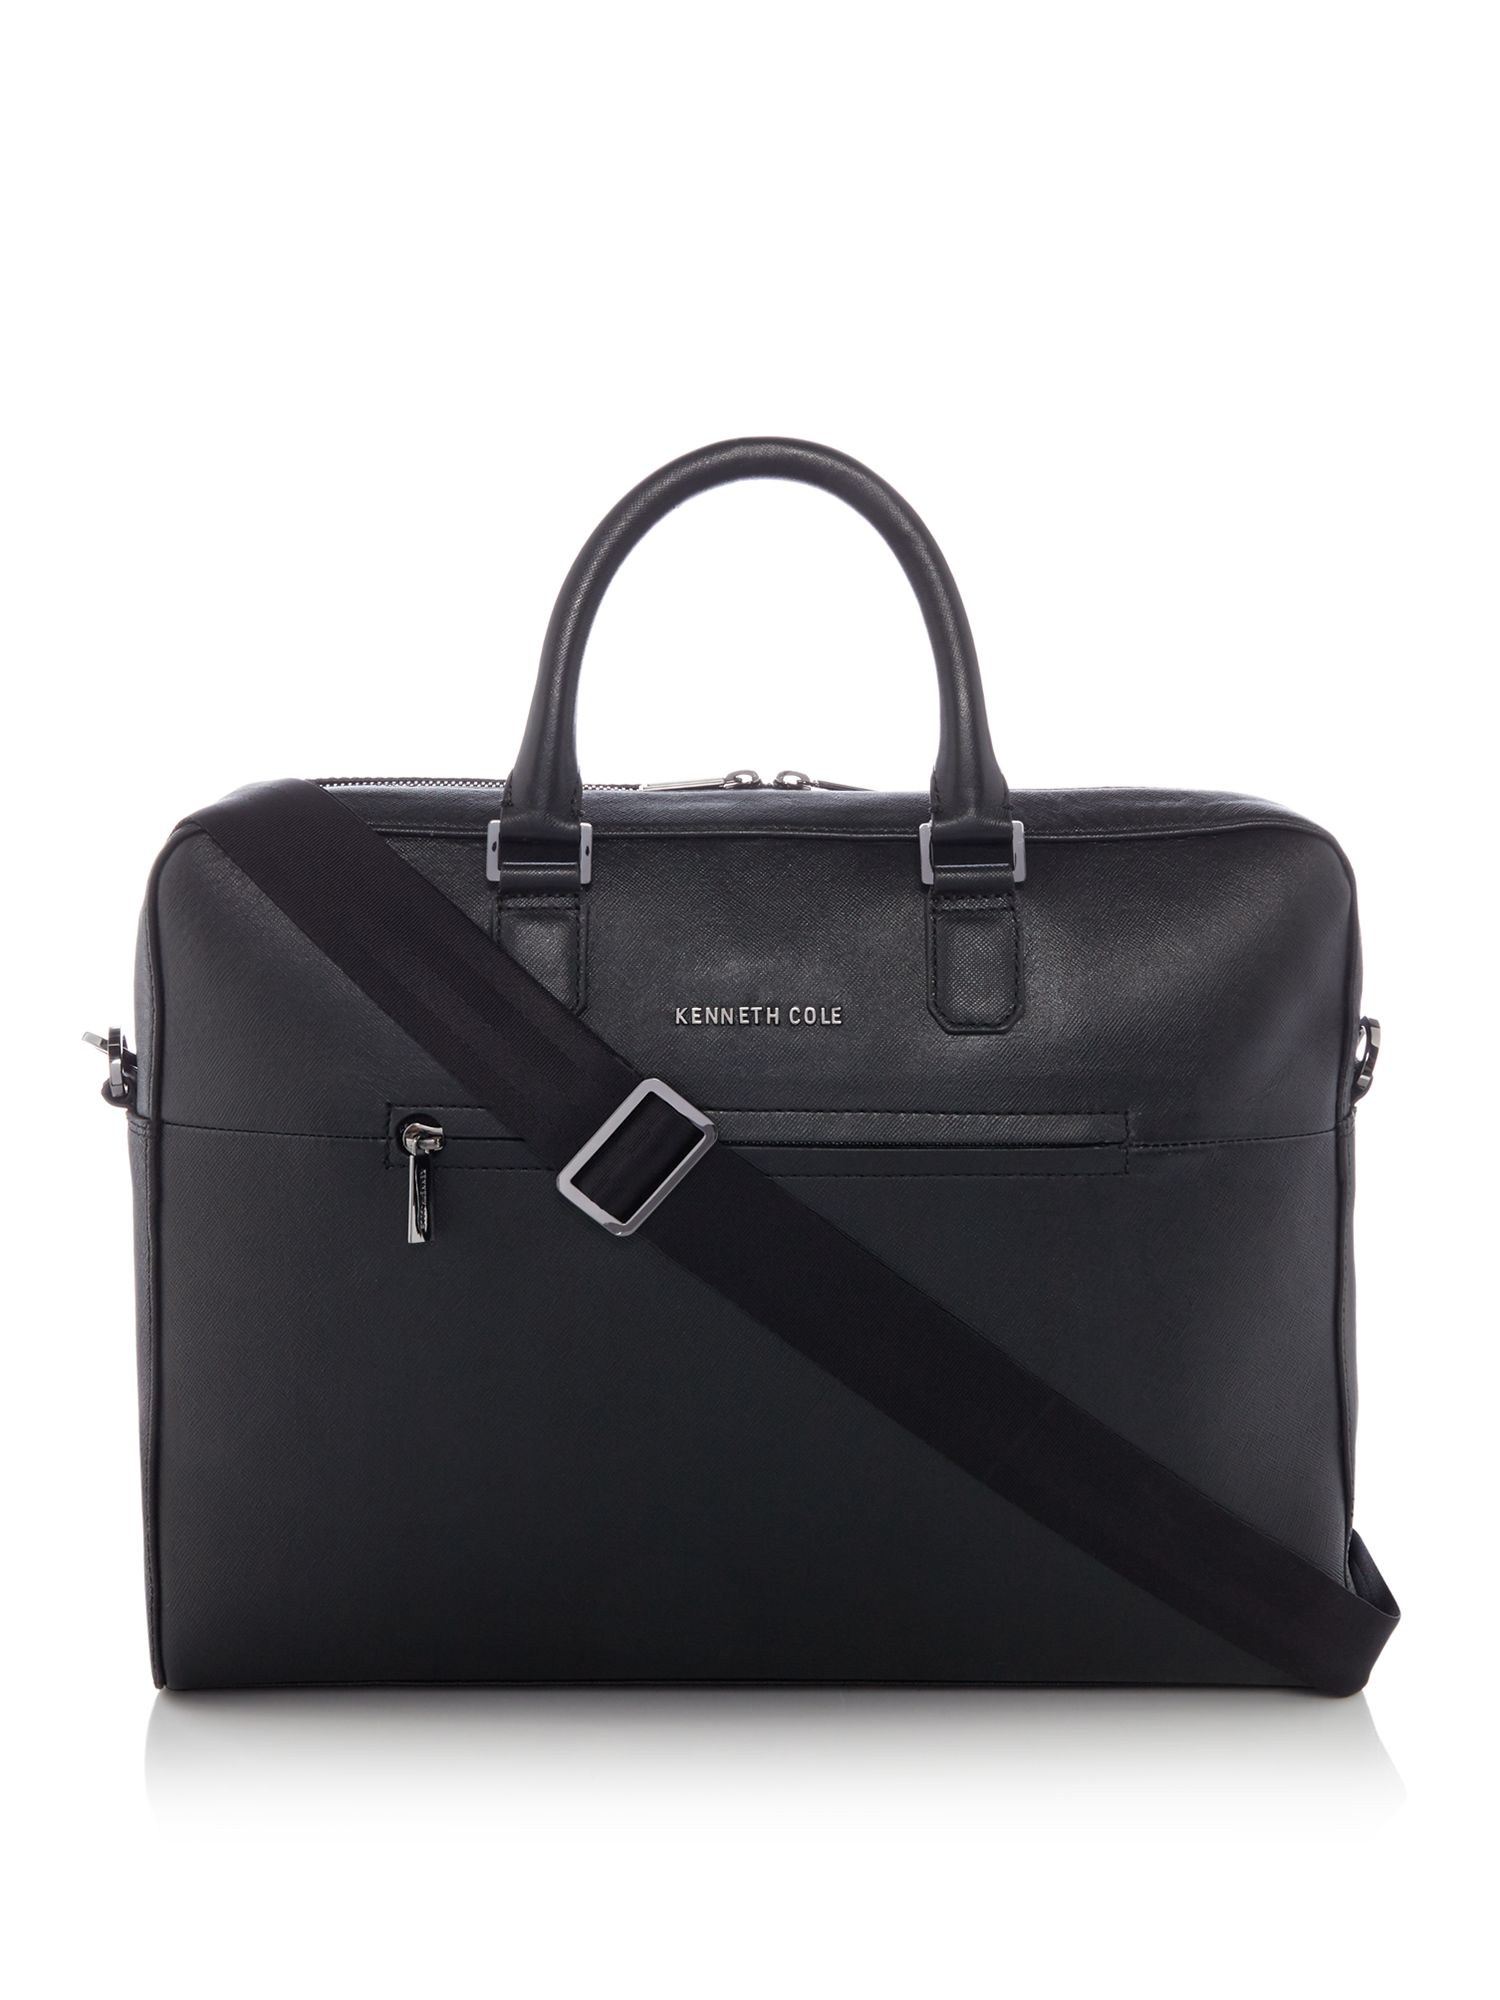 Kenneth Cole Saffiano Leather Laptop Bag, Black